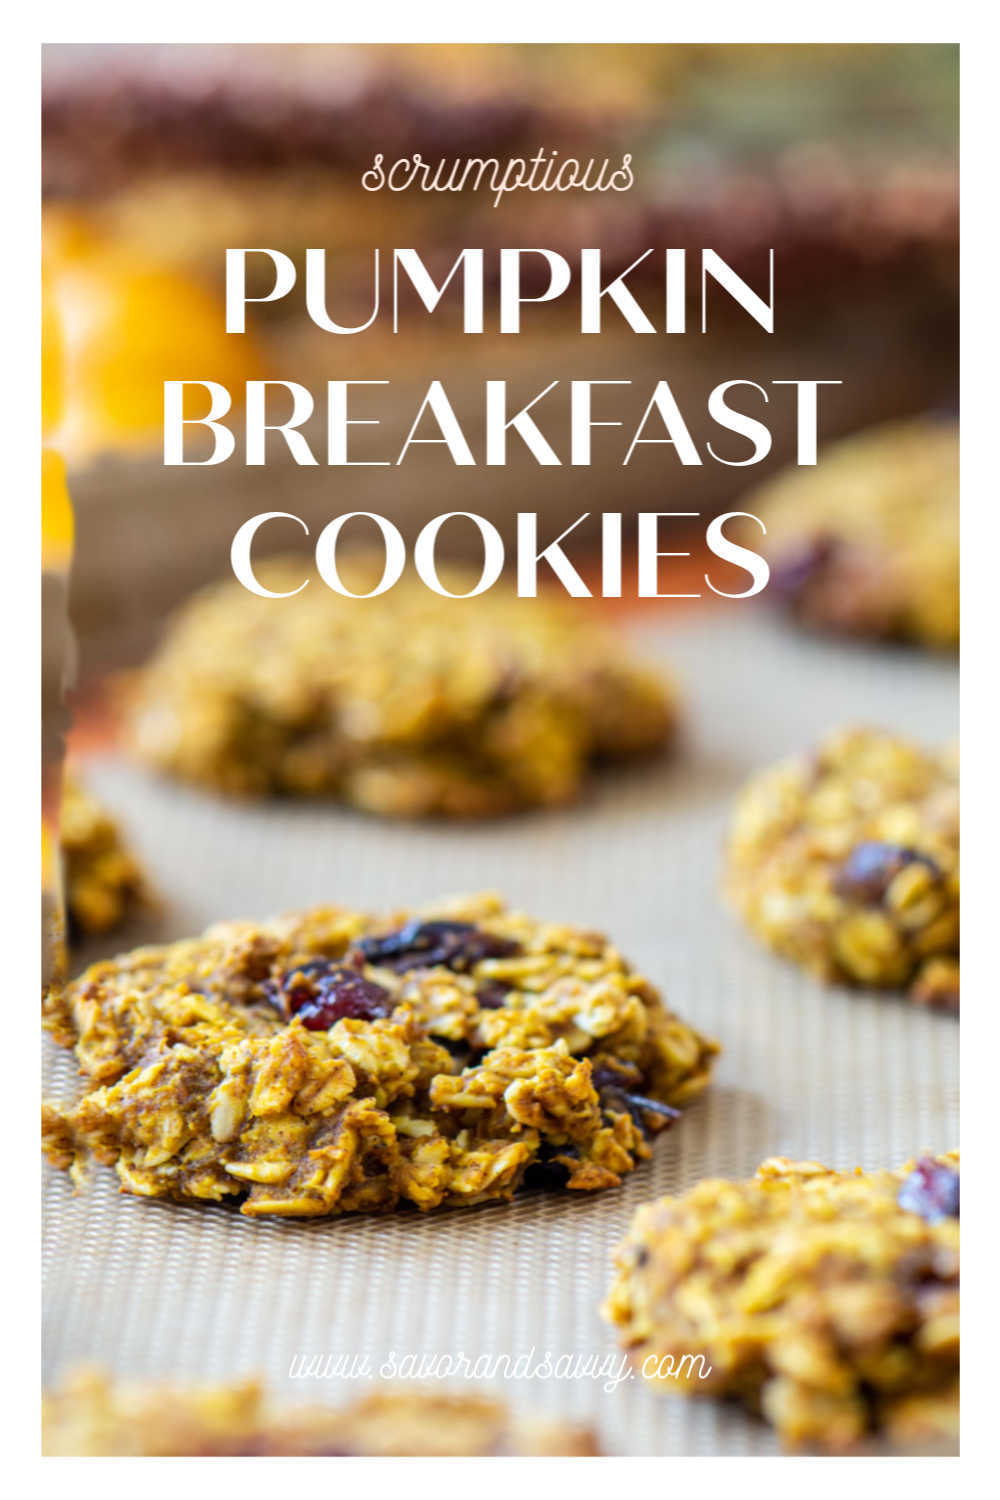 Phenomenal Pumpkin Oatmeal Breakfast Cookies are a FANTASTIC meal prep breakfast for busy families. Make ahead on Sunday to last the whole week and you will love this wholesome, healthy option for your busy life! #pumpkin #breakfastcookies #pumpkincookies #mealprep